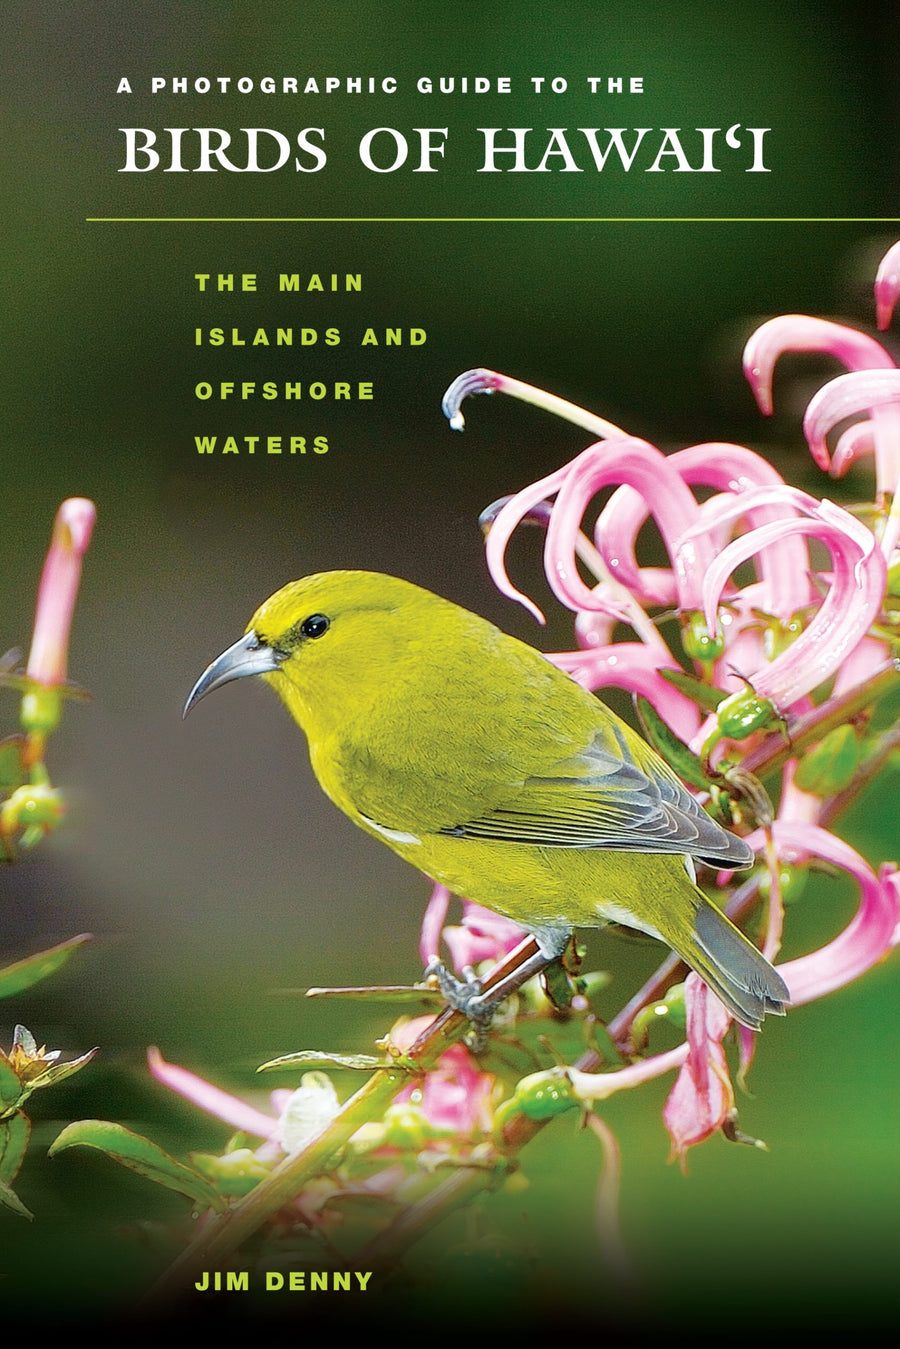 Photographic Guide To The Birds of Hawaiʻi, A